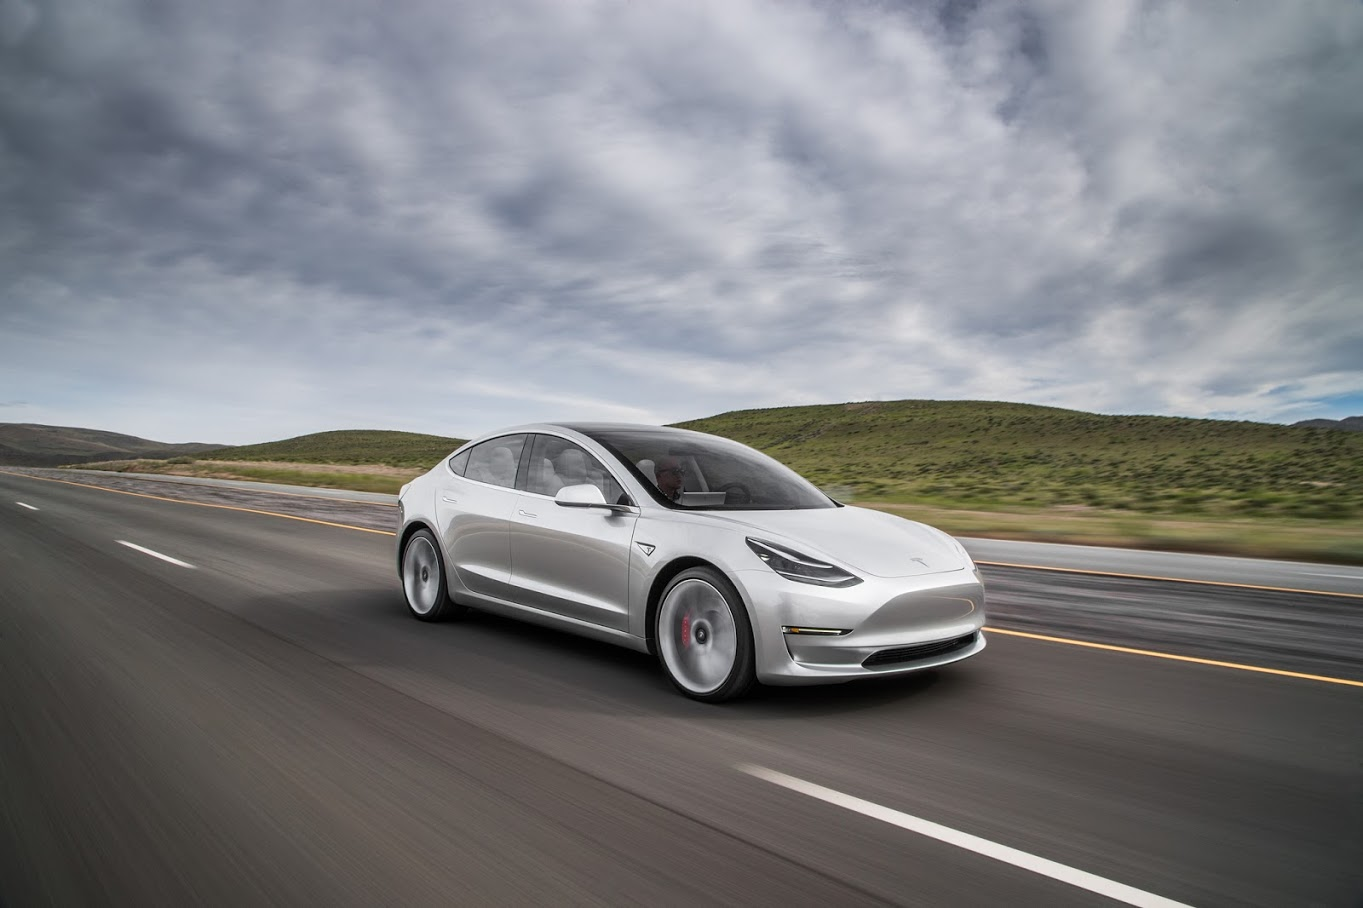 Tesla Model 3 production aims for 6,000 units per week in June after ...